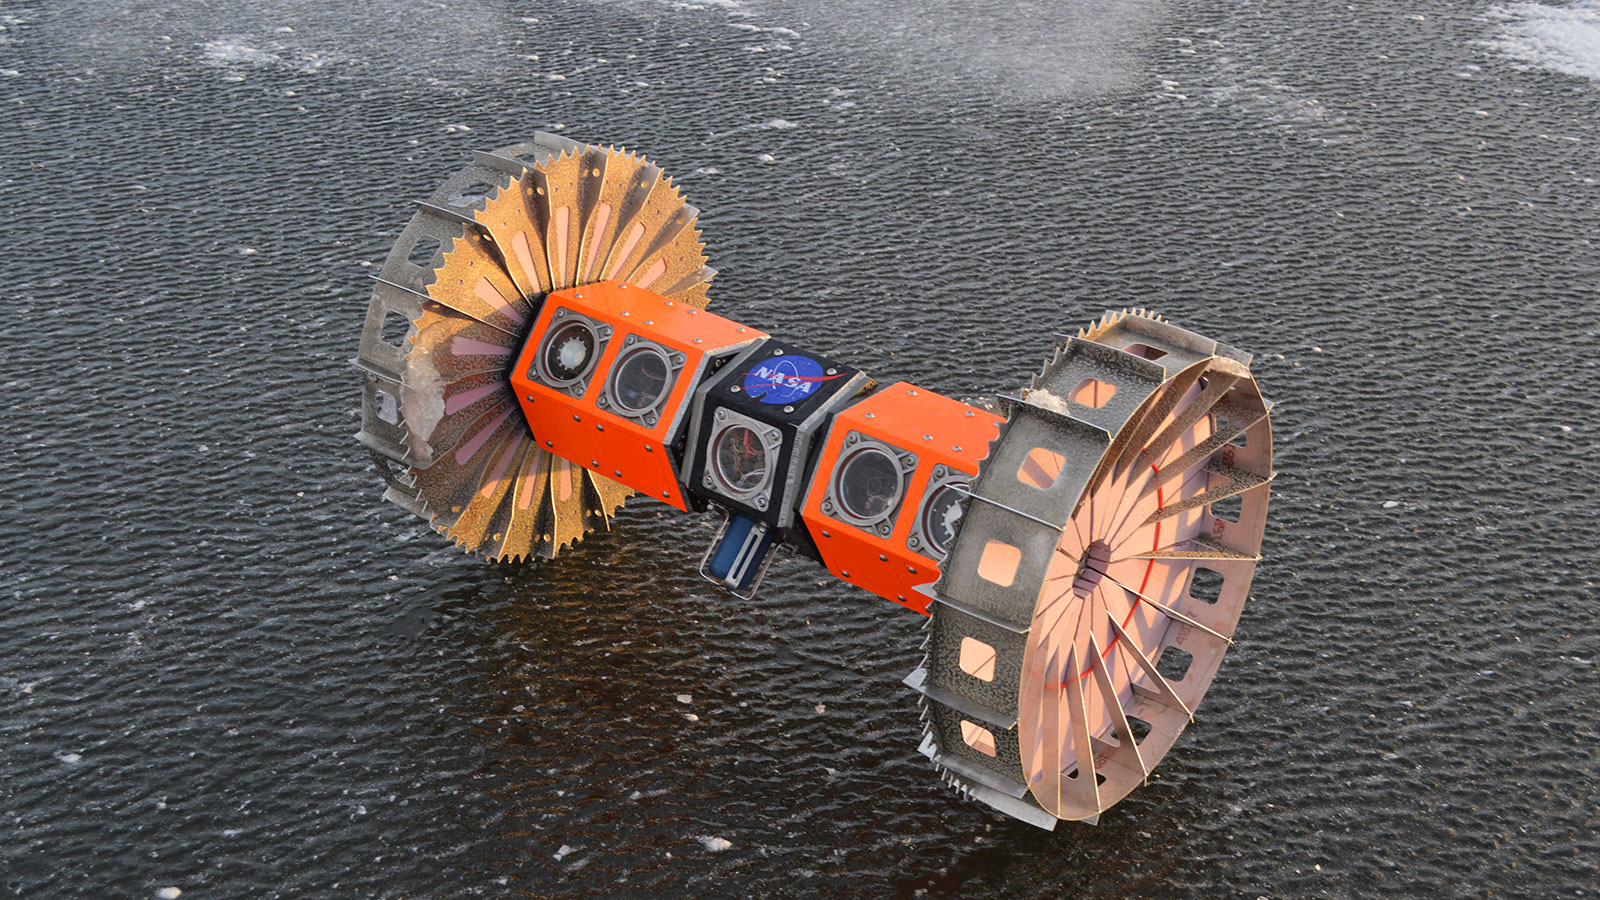 Antarctic tests will prepare this rover for a possible trip to an icy ocean moon